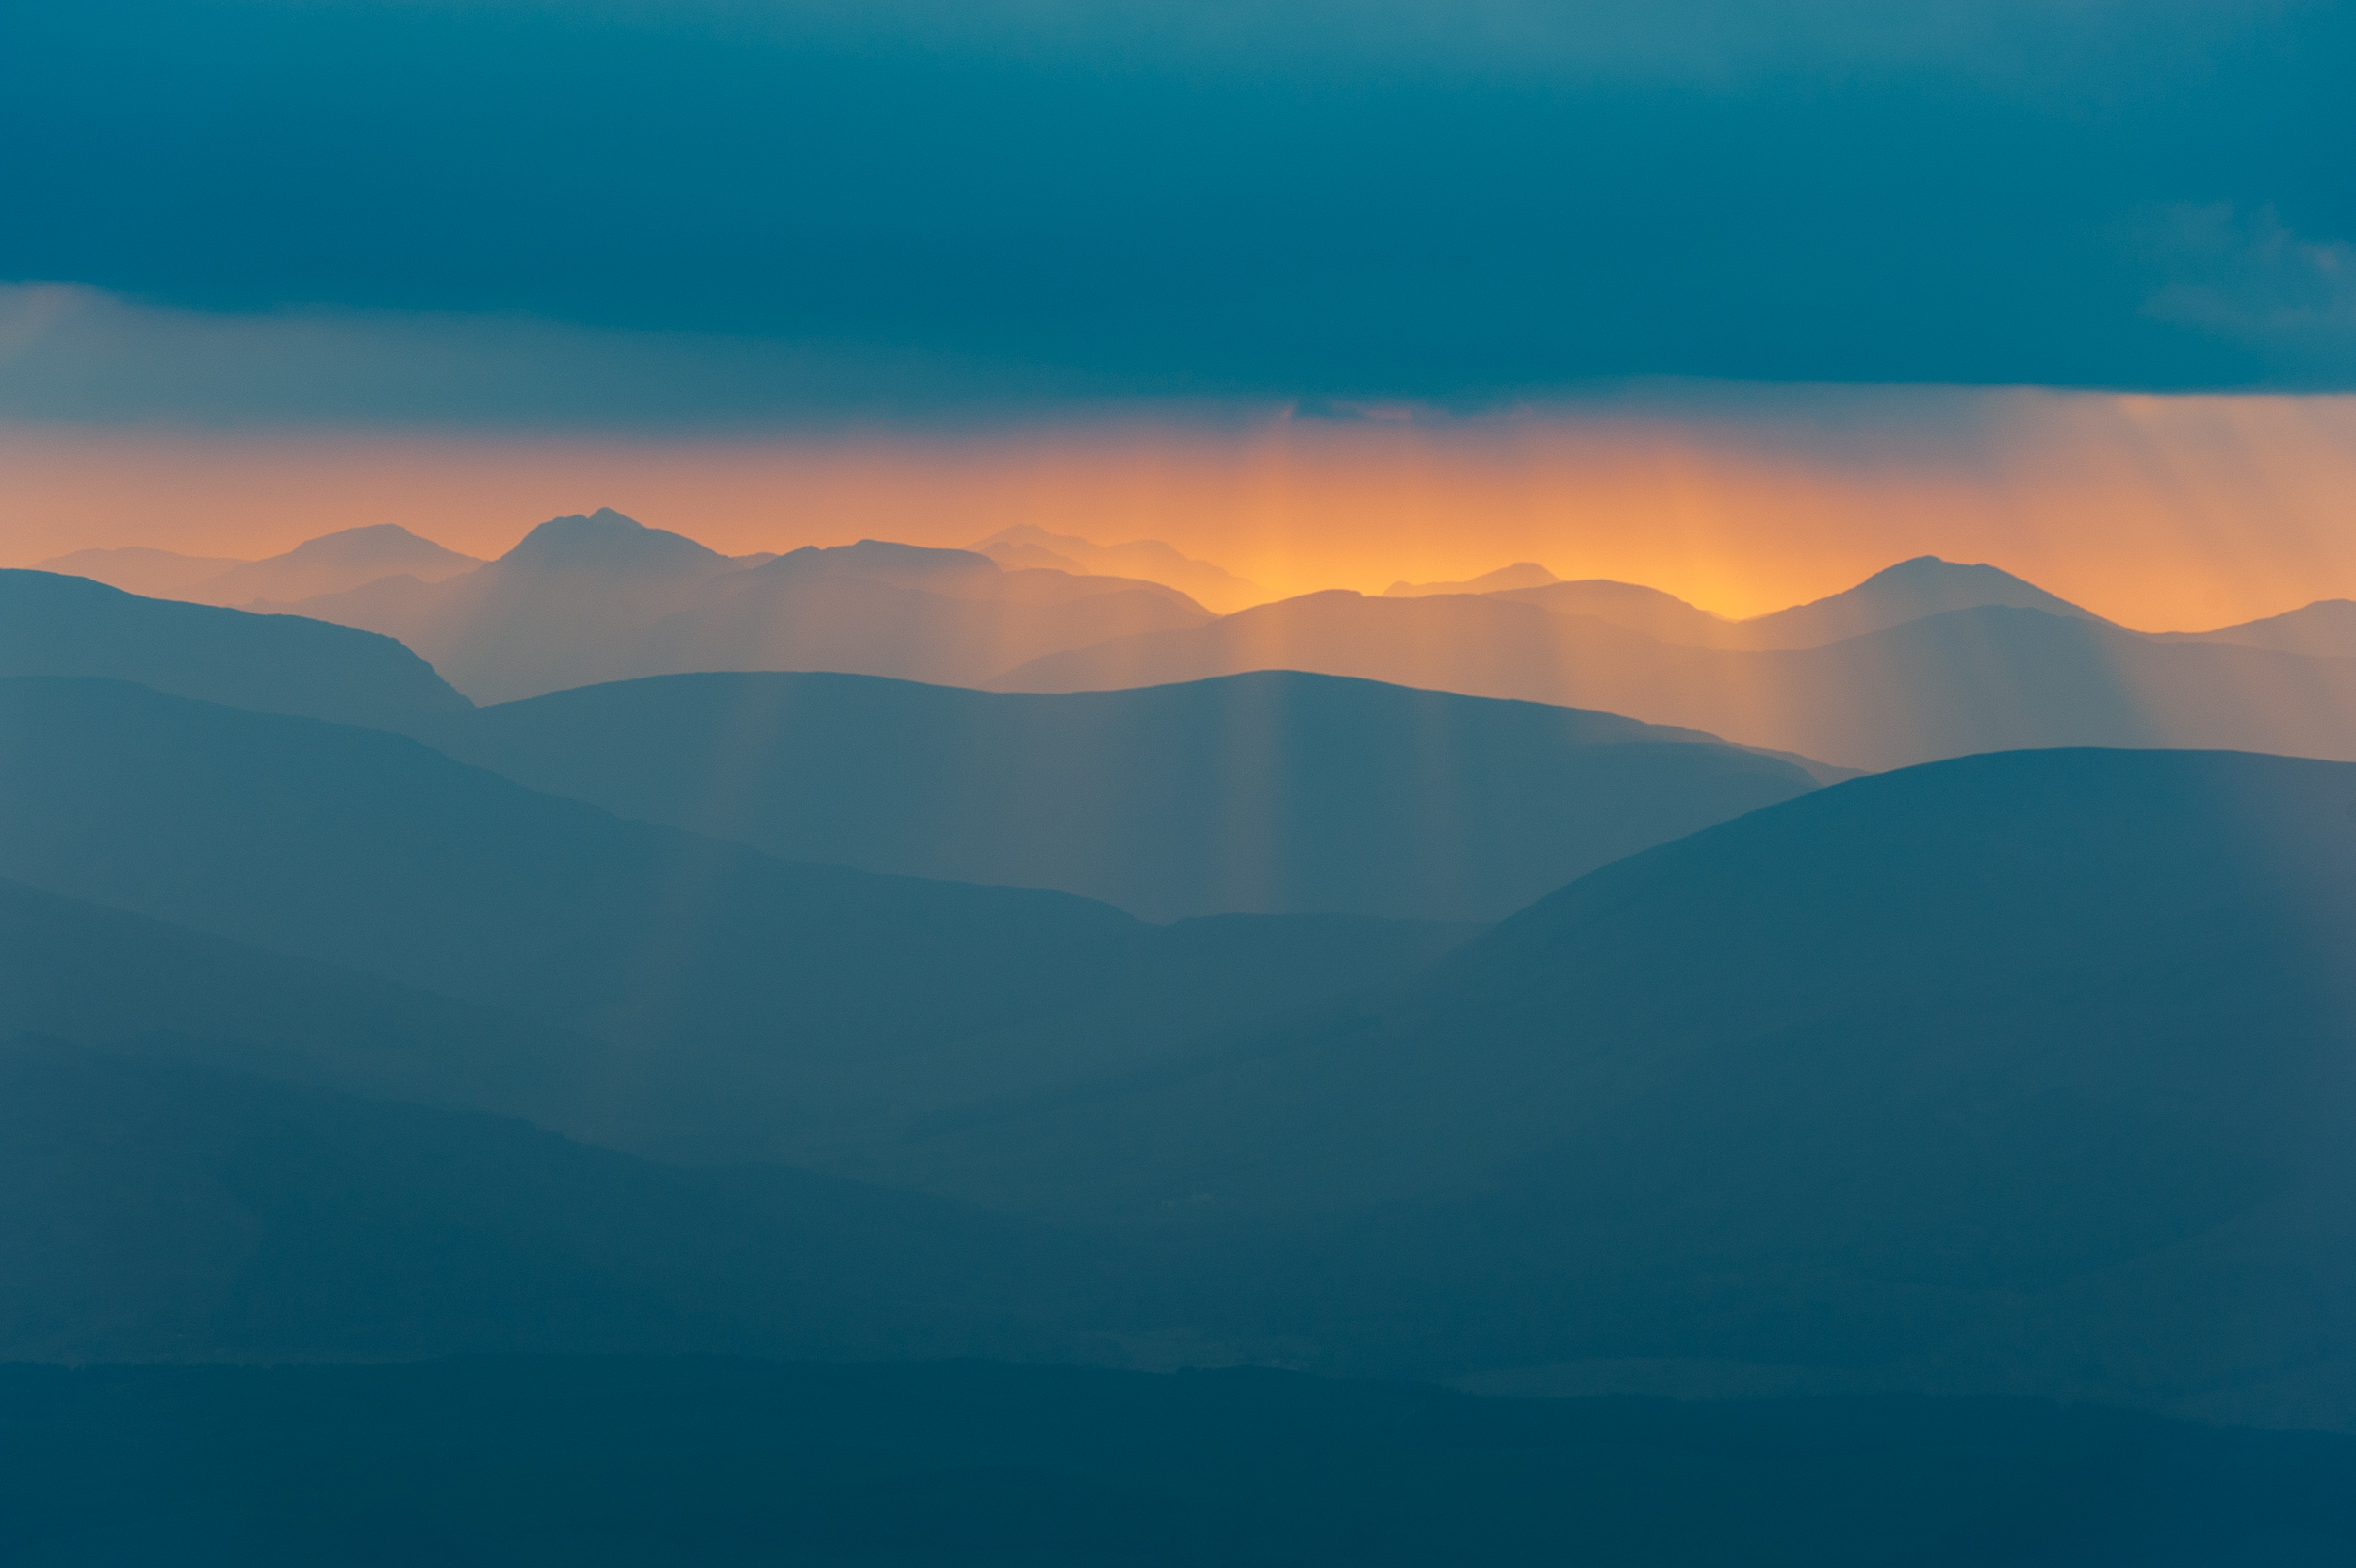 Sunset lights up Meall na Teanga and other peaks in the Glengarry Forest from a bivvy on Stob Choire Claurigh in the Grey Corries, West Highlands of Scotland.